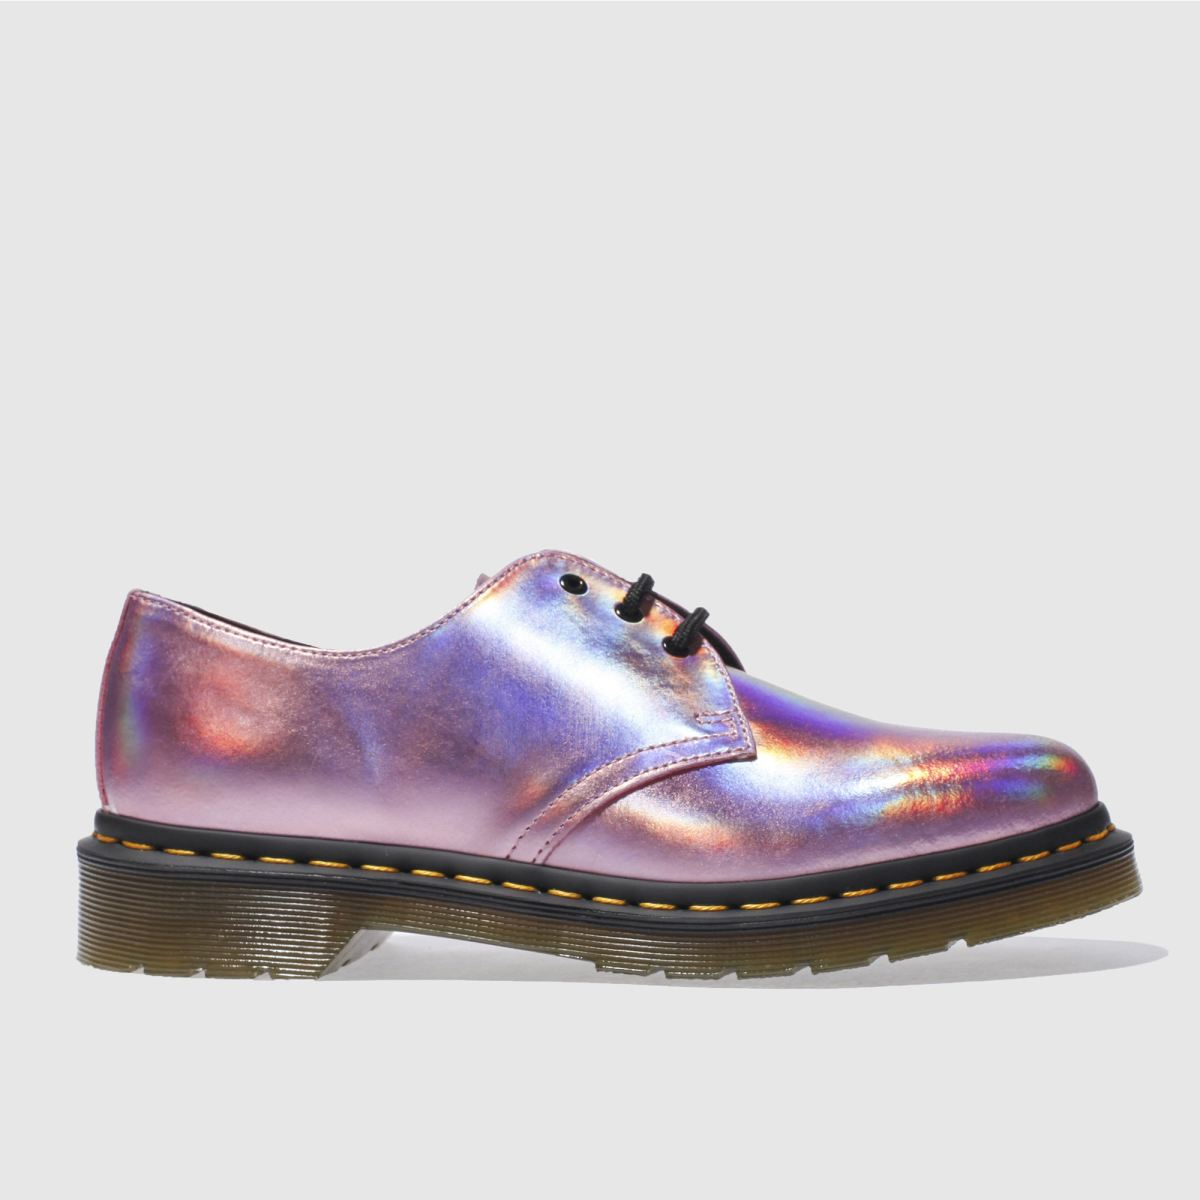 dr martens pink 1461 rs 3 eye shoe metallic flat shoes